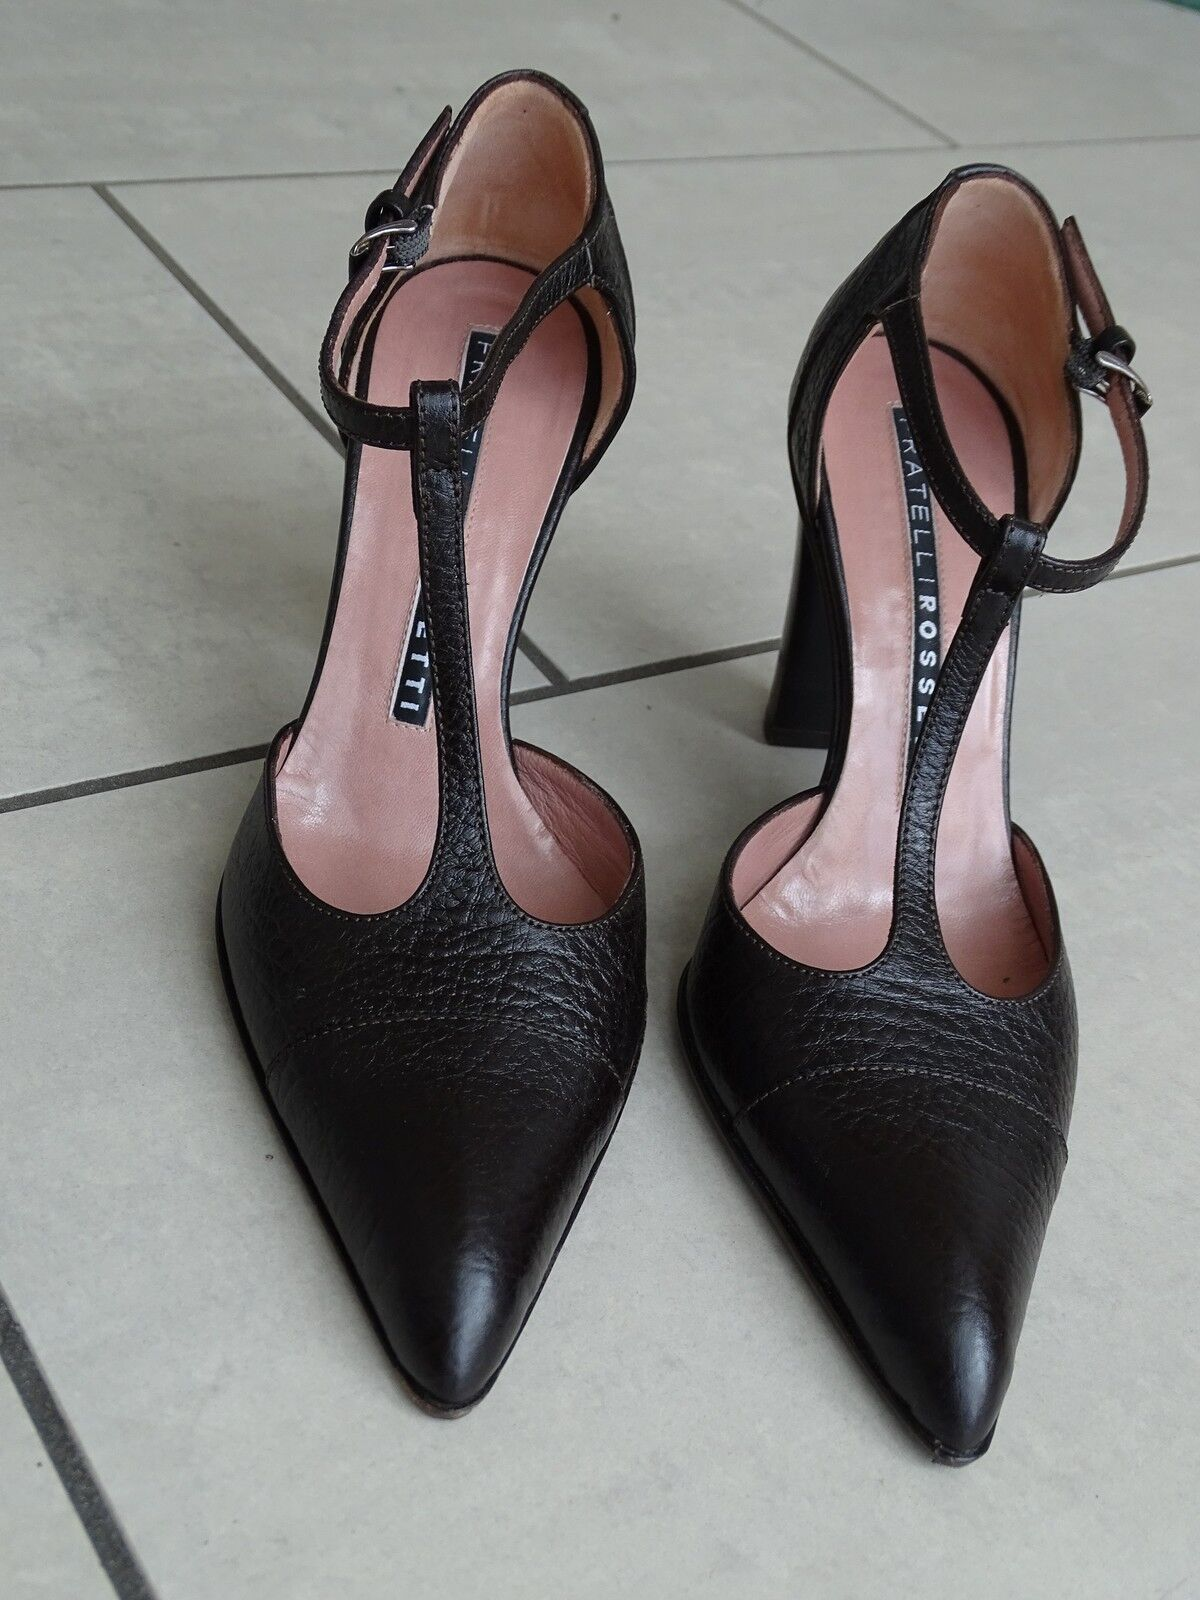 Fratelli Rossetti Pumps Italy braun Leder Made in Italy Pumps  Gr. 36 w. neu 97ea4a